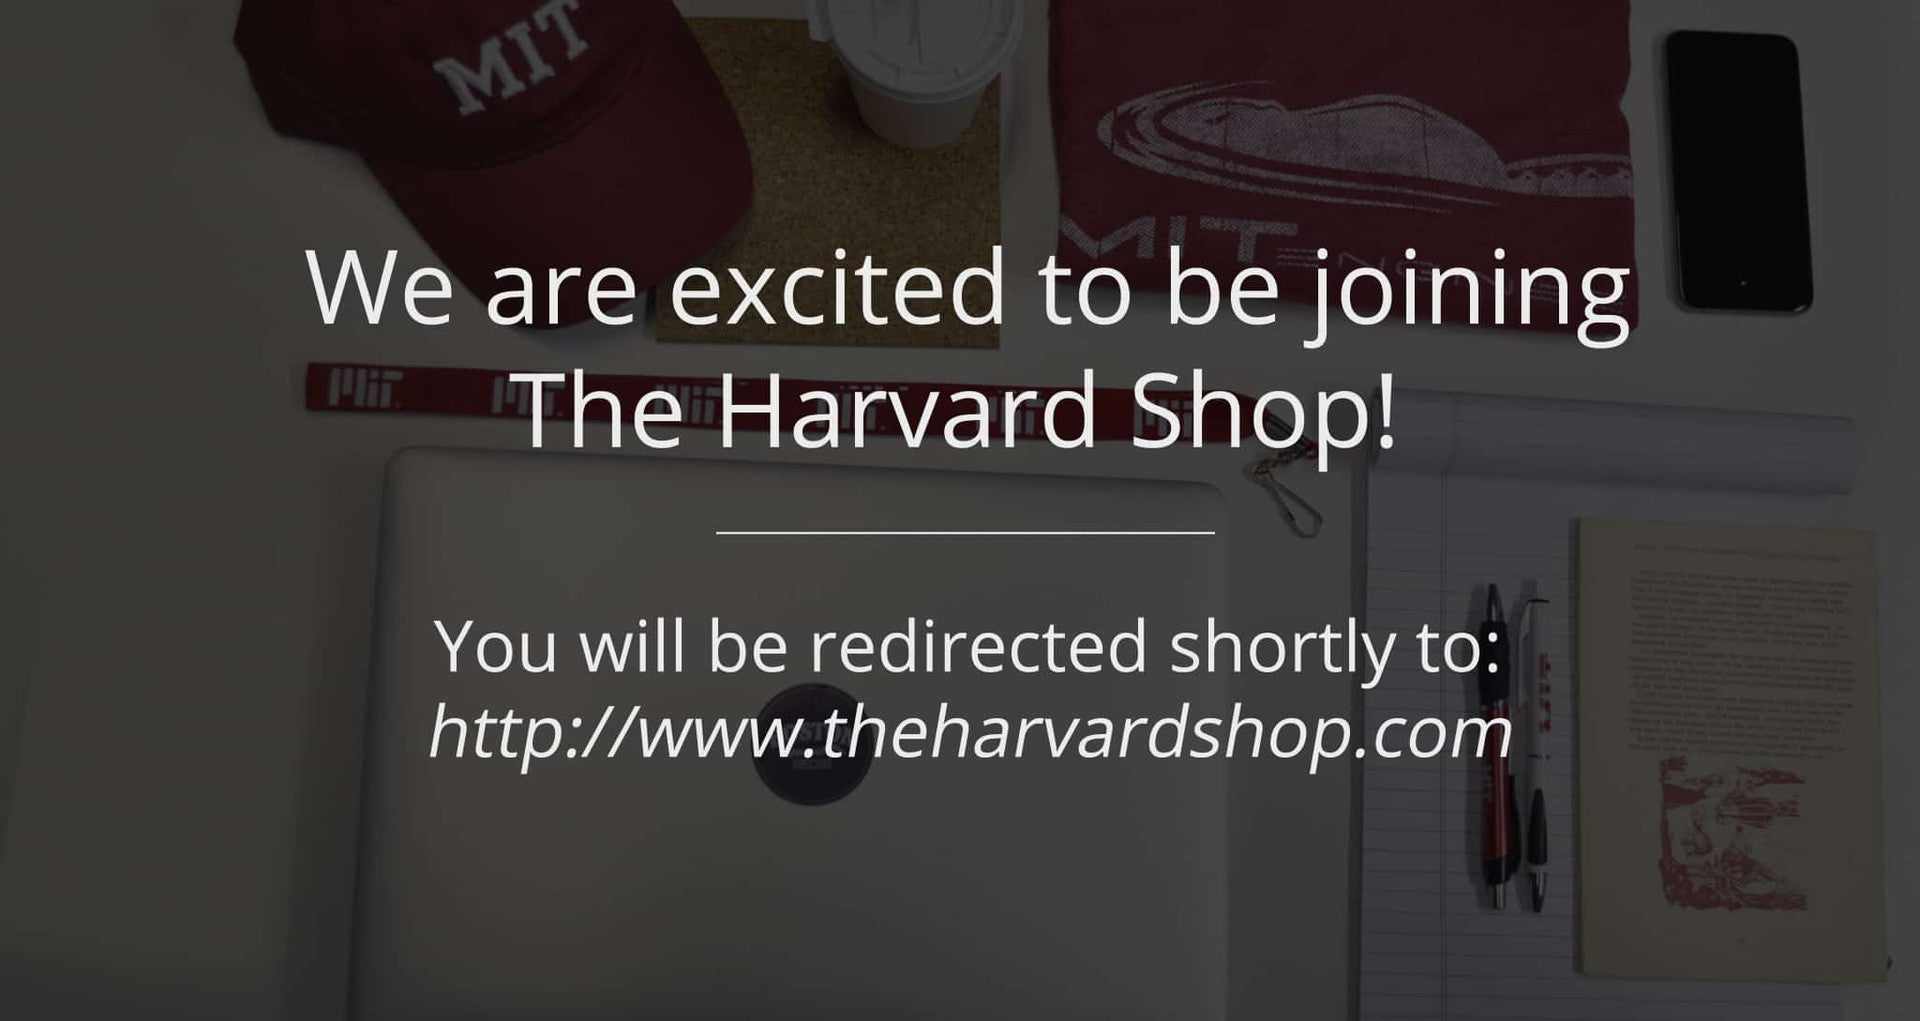 We're joining The Harvard Shop